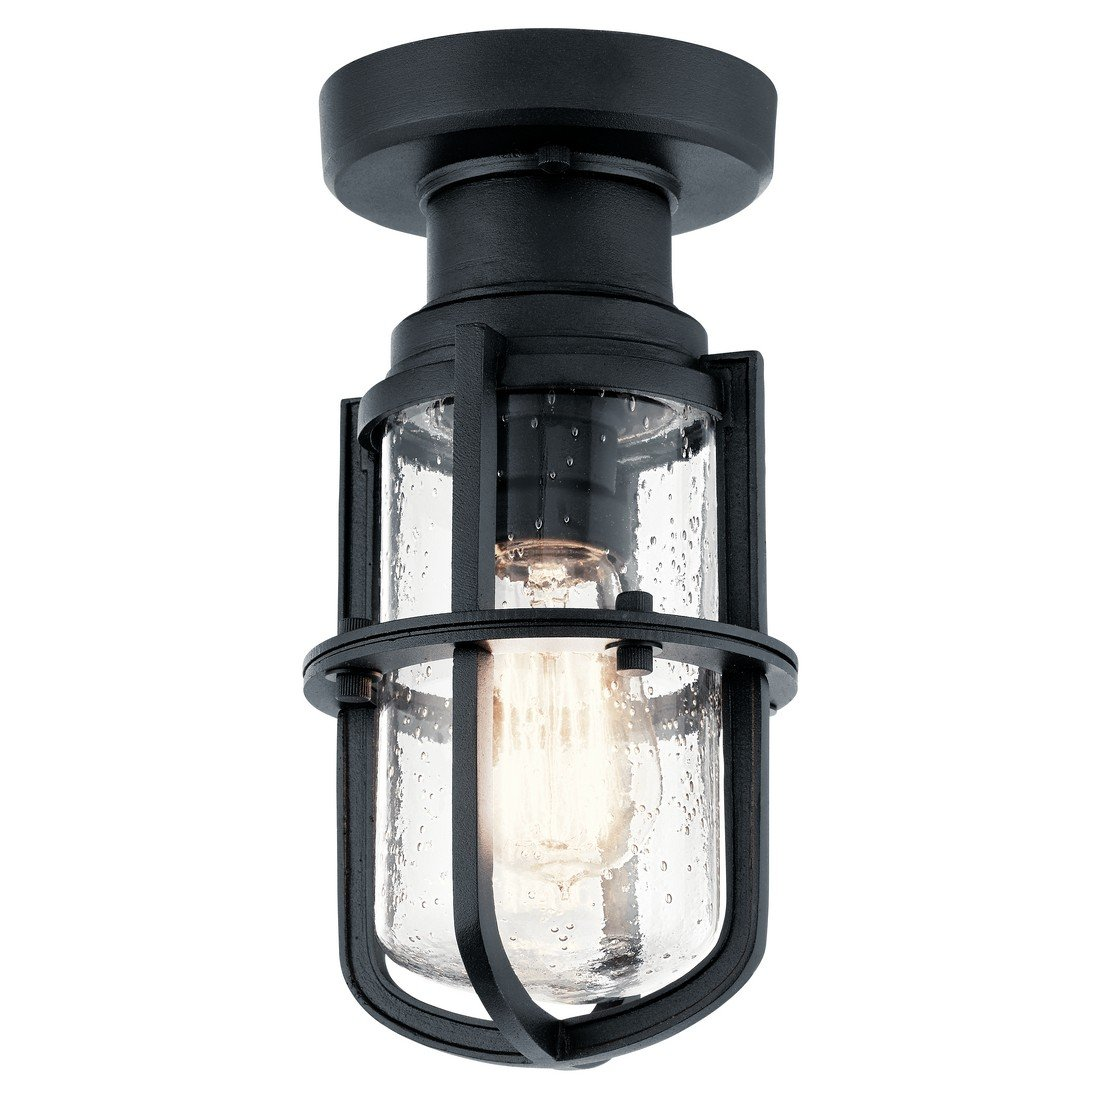 Kichler 49861BKT One Light Outdoor Ceiling Mount by KICHLER